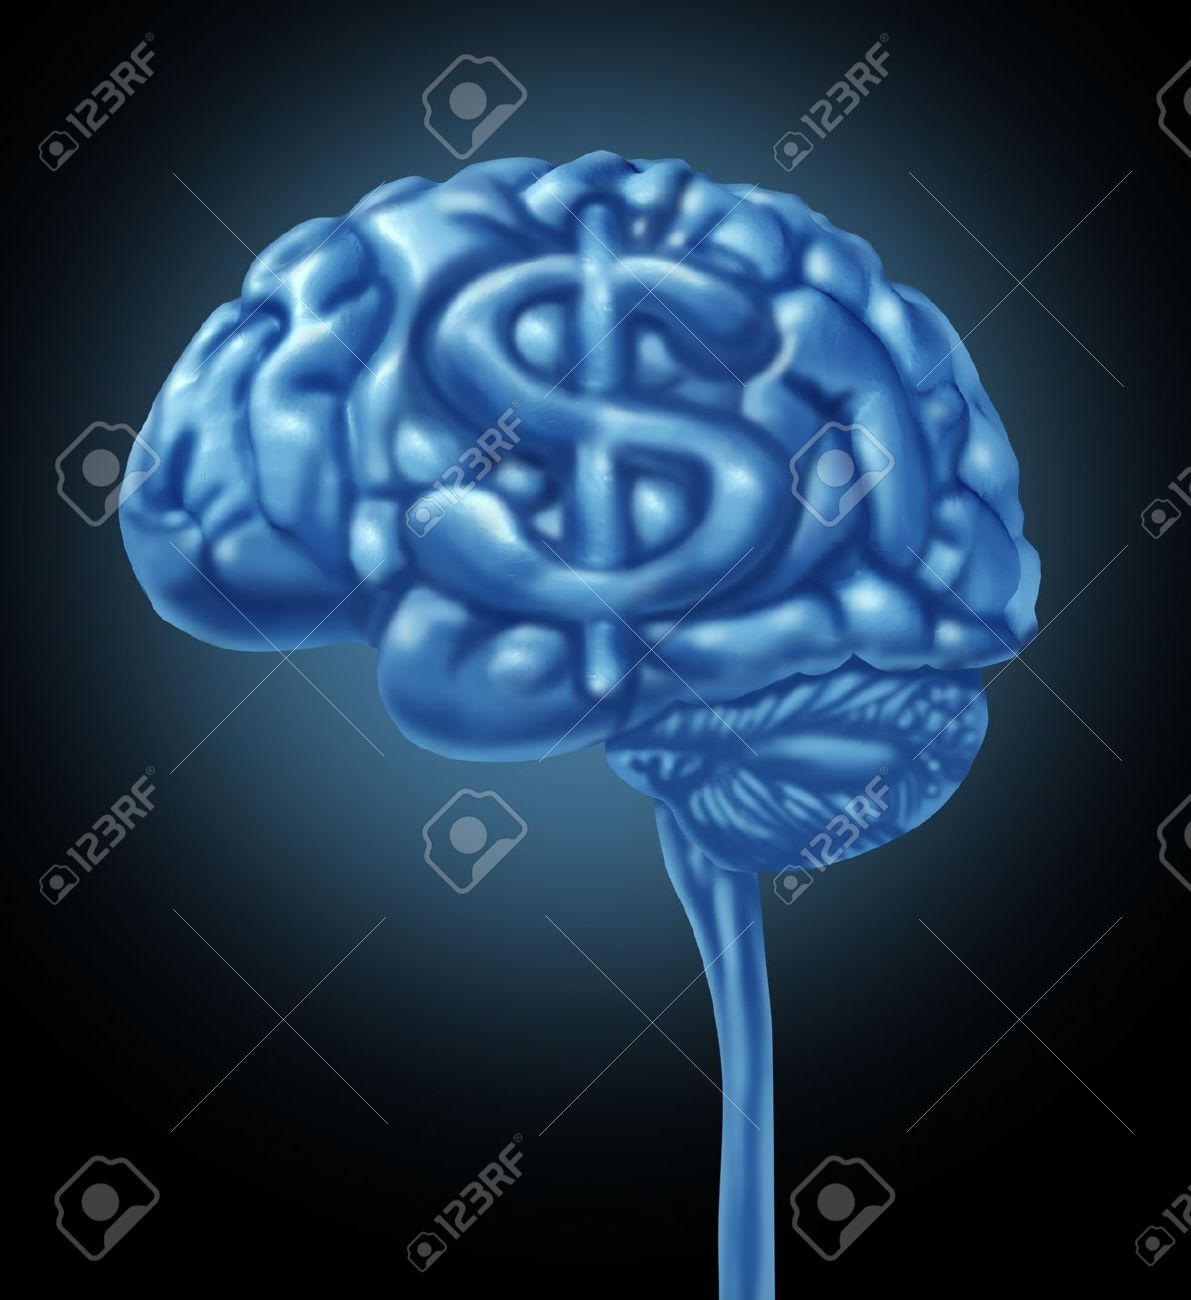 21492065-Financial-brain-business-concept-with-a-human-thinking-organ-and-a-dollar-symbol-integrated-in-the-g-Stock-Photo